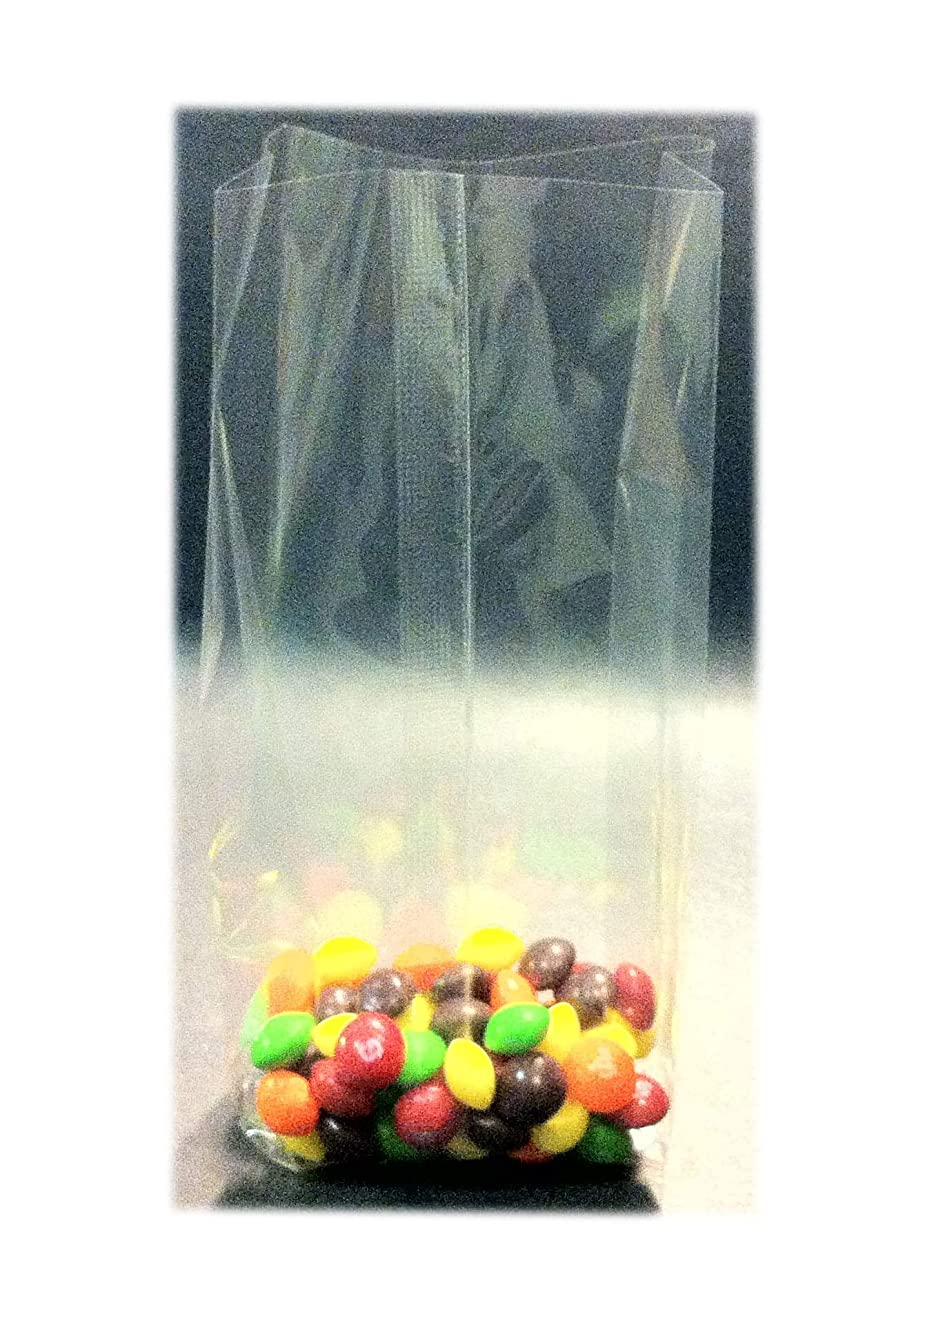 UNIQUEPACKING 100 Pcs 4x2x12 Clear Side Gusseted Cello Cellophane Bags Good for Candy Cookie Bakery